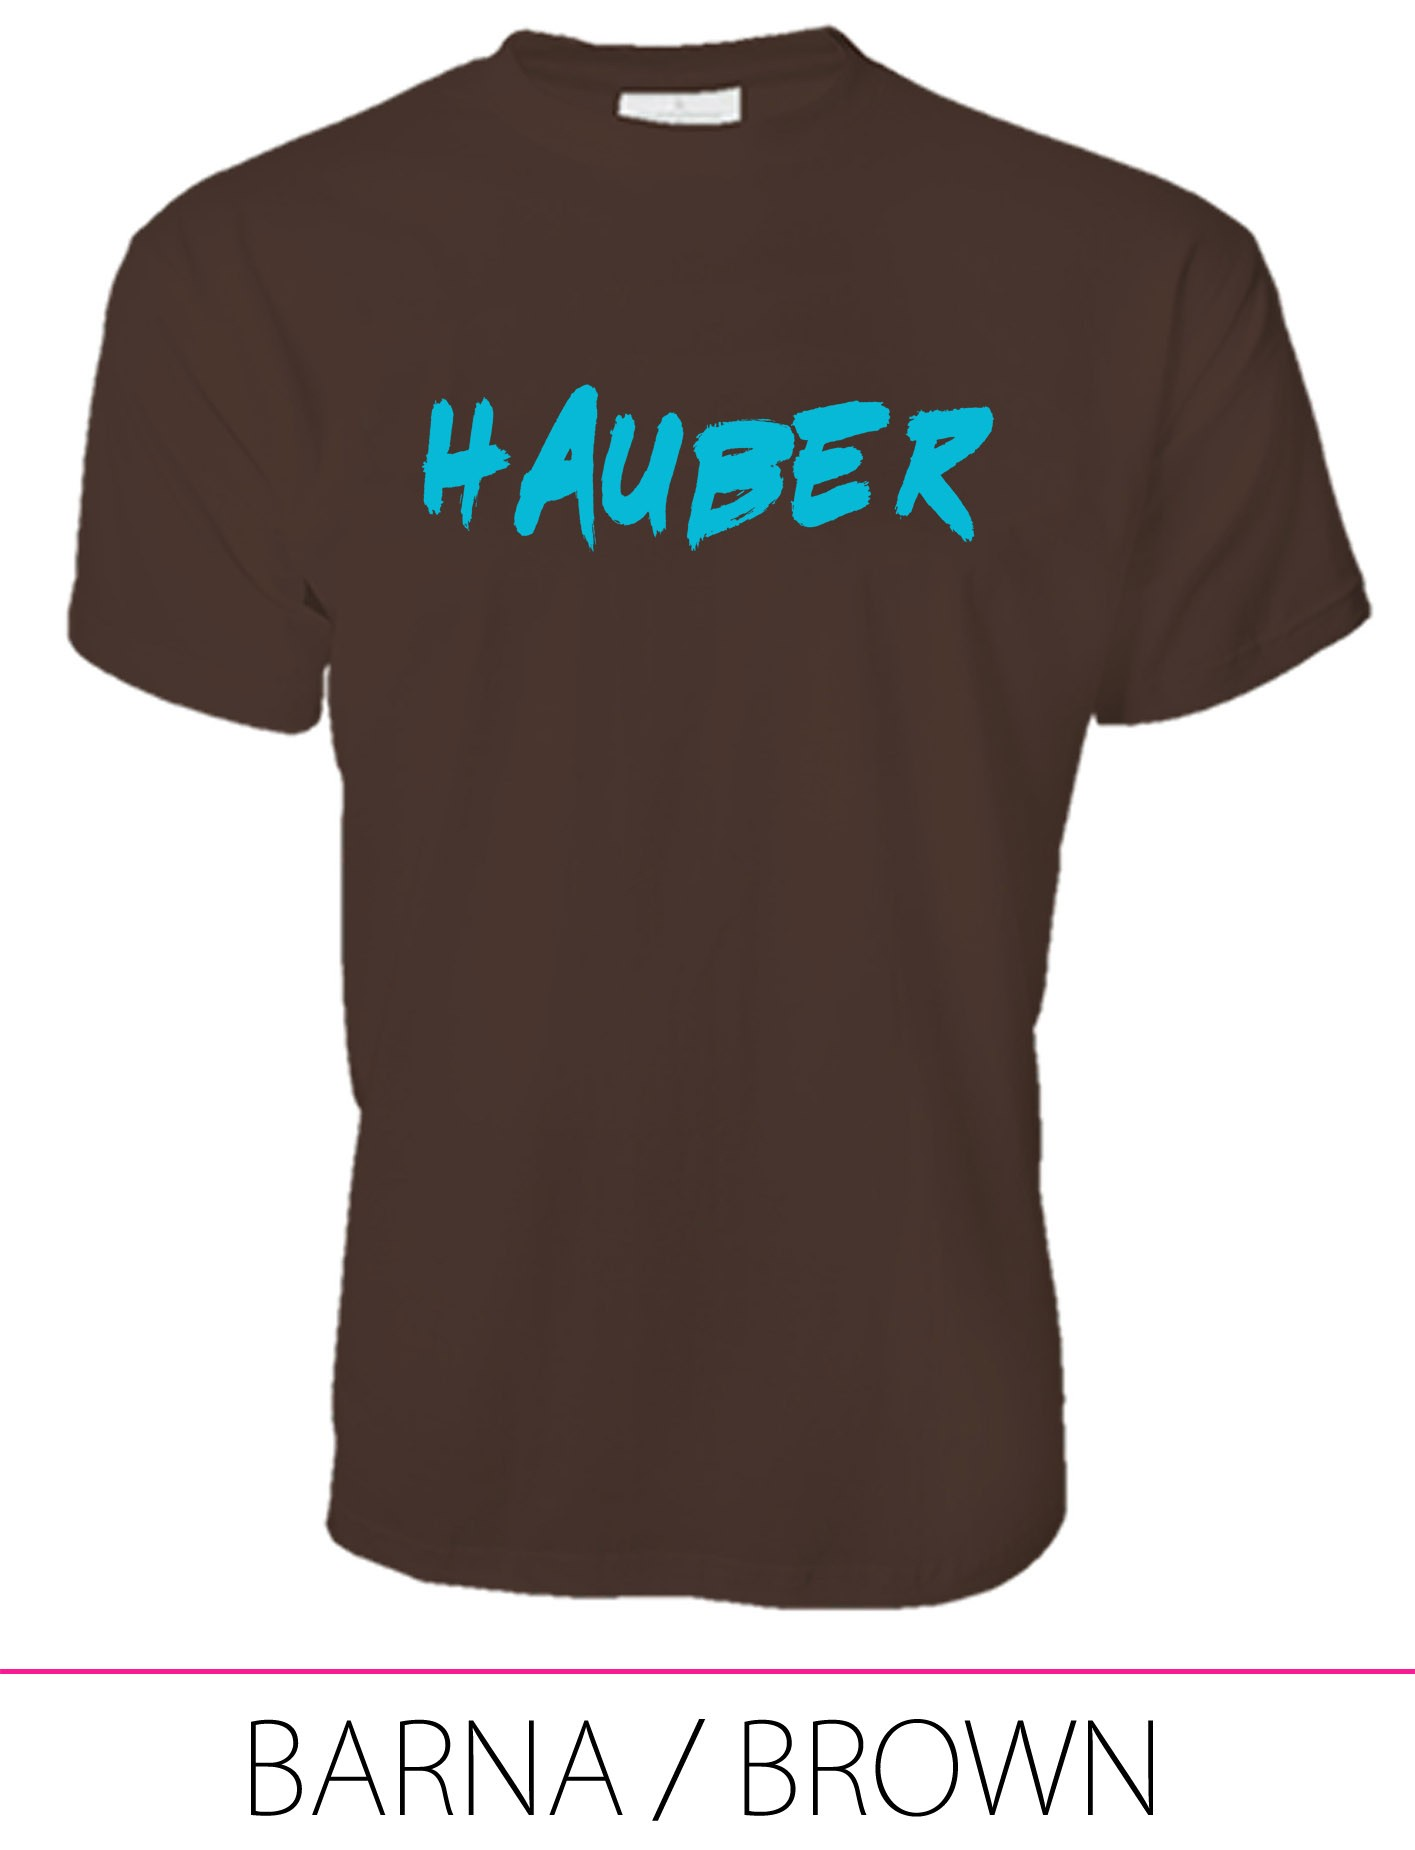 MEN PREMIUM CREW NECK T-SHIRT HAUBER BROWN